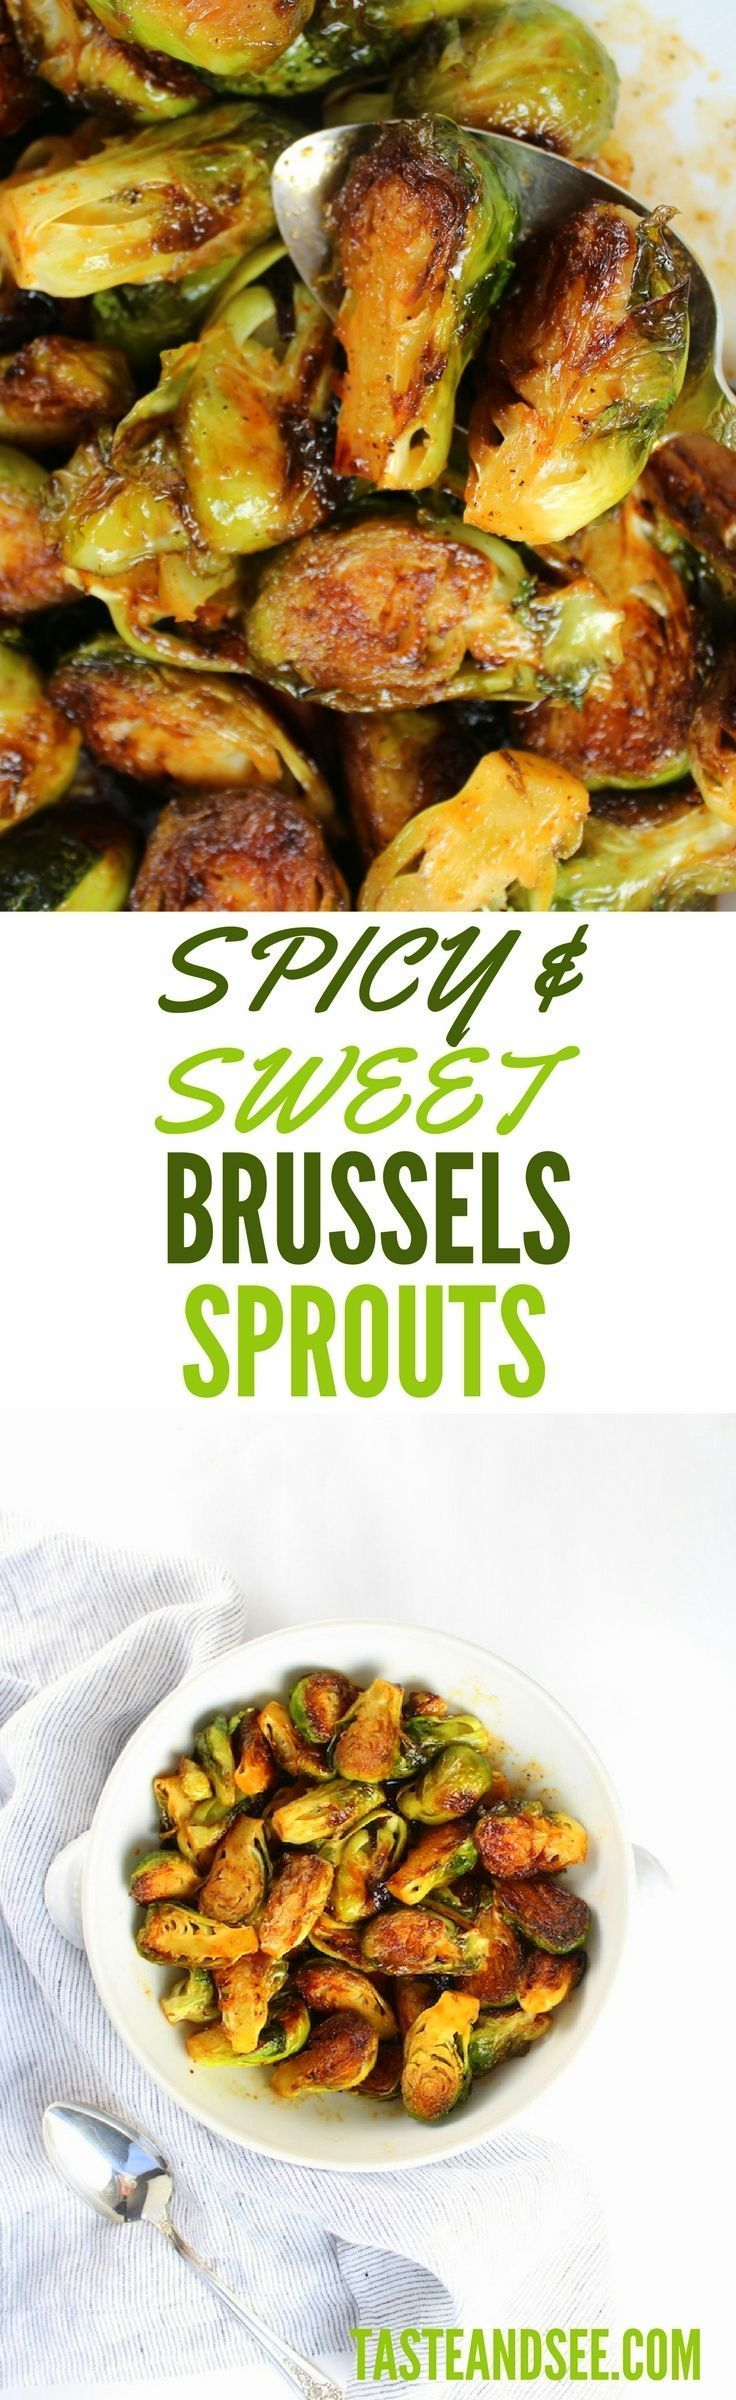 Spicy and Sweet Brussels Sprouts - tangy, sweet and zesty! W/ honey, lime, & Sriracha sauce. http://tasteandsee.com